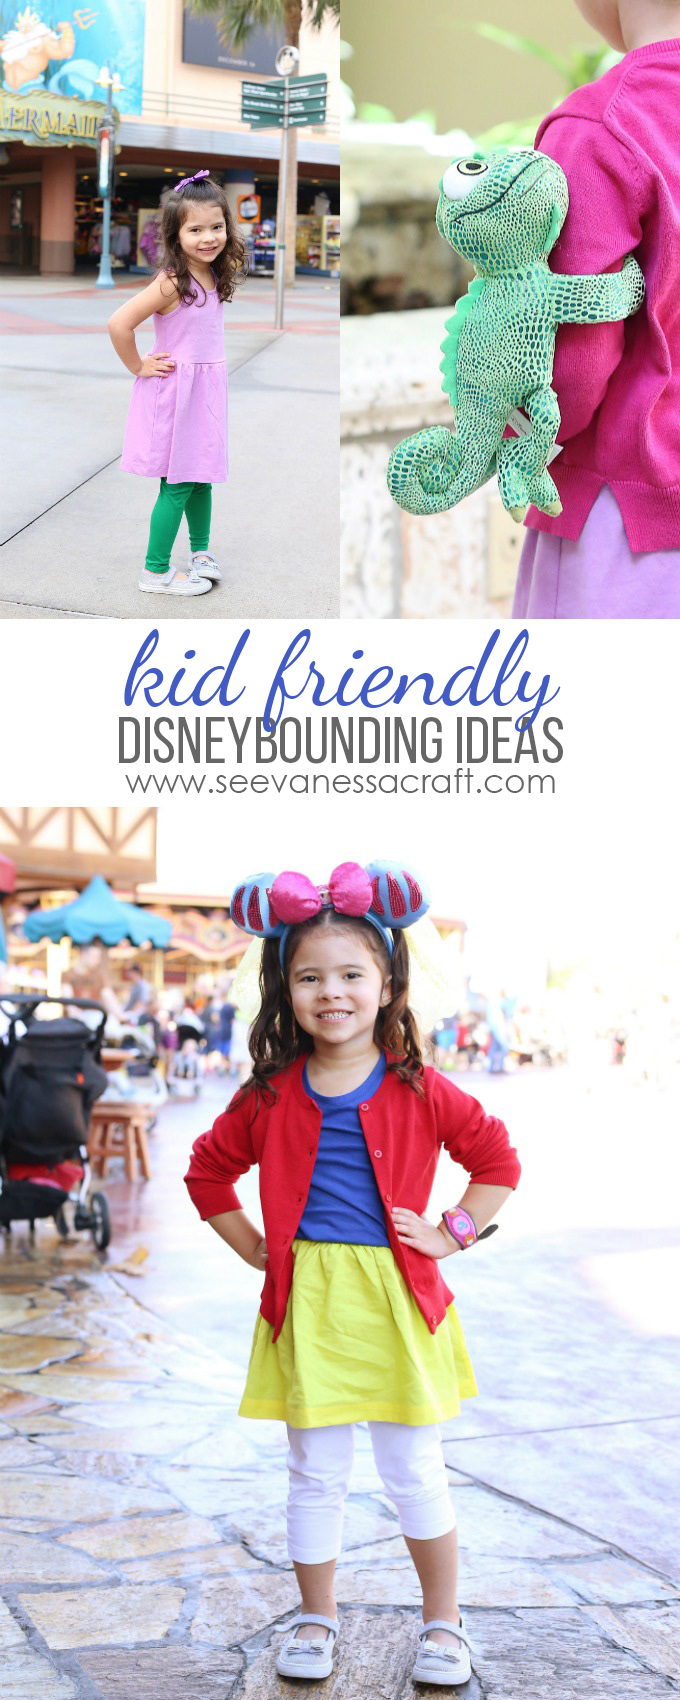 Disney World Disneybounding Ideas for Kids #DisneySMMC